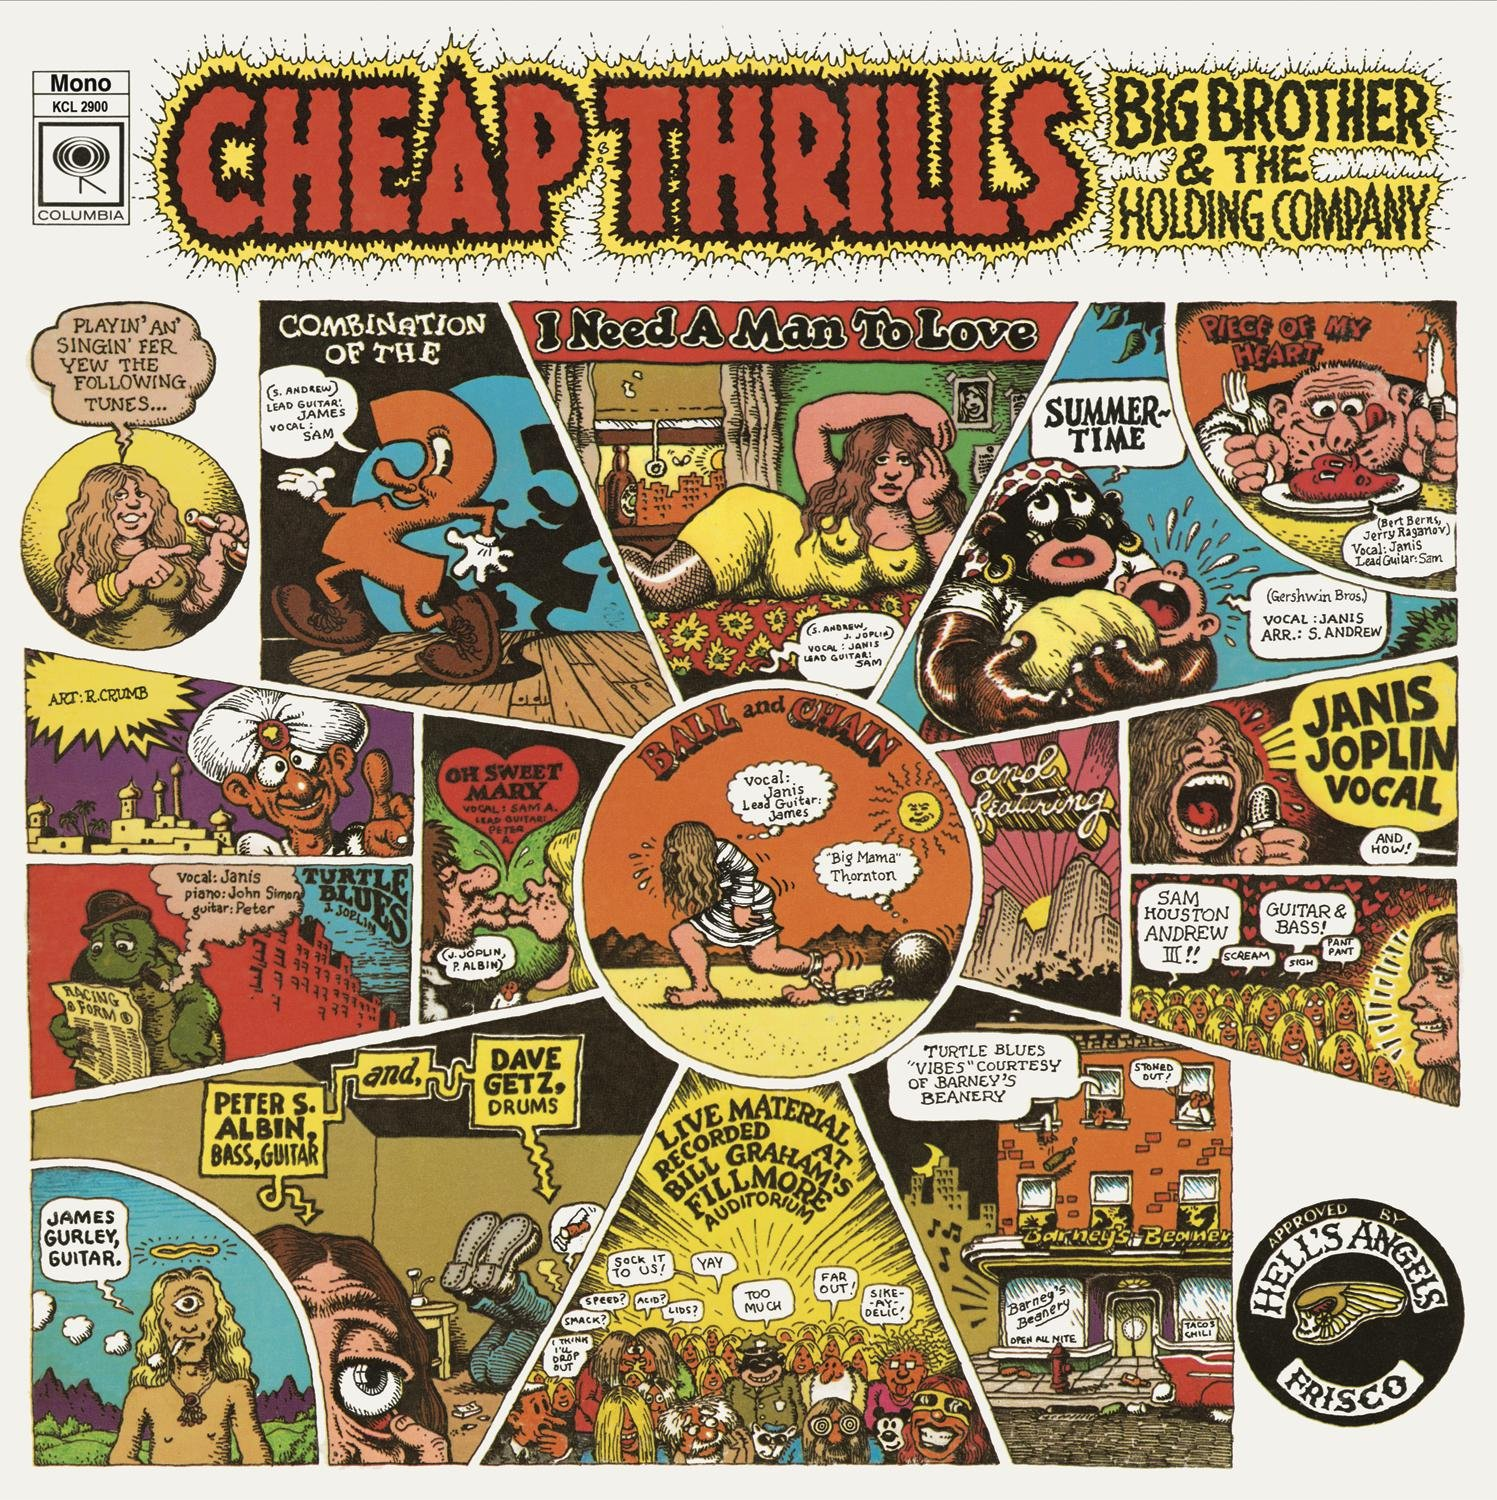 Big Brother & The Holding Company - Cheap Thrills - Amazon.com Music